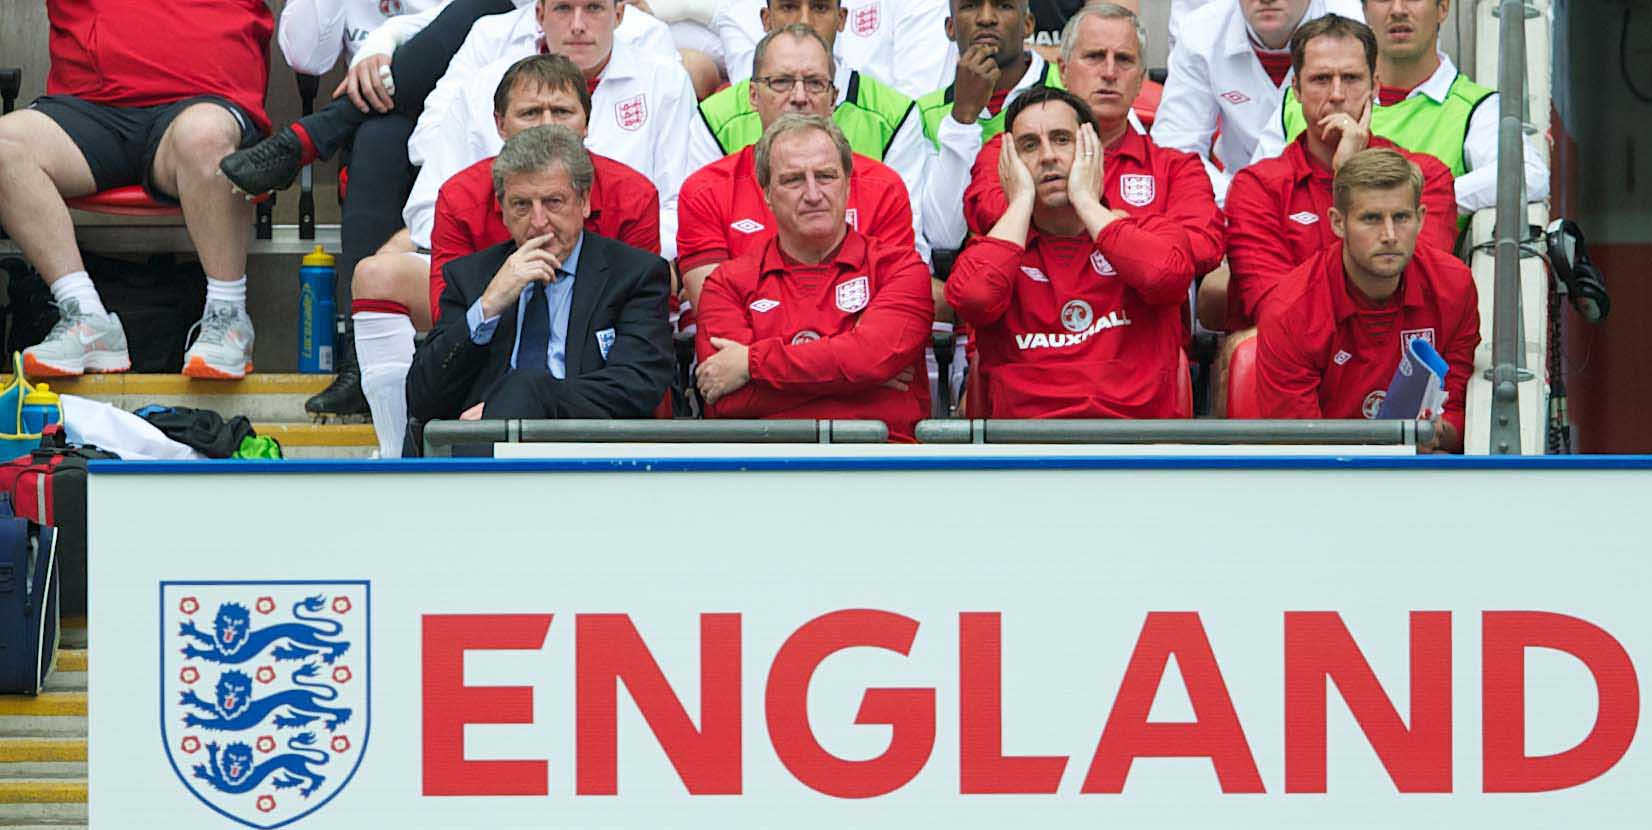 HODGSON: ENGLAND FANS HAVE WOKEN UP – NOW FOR THE MEDIA